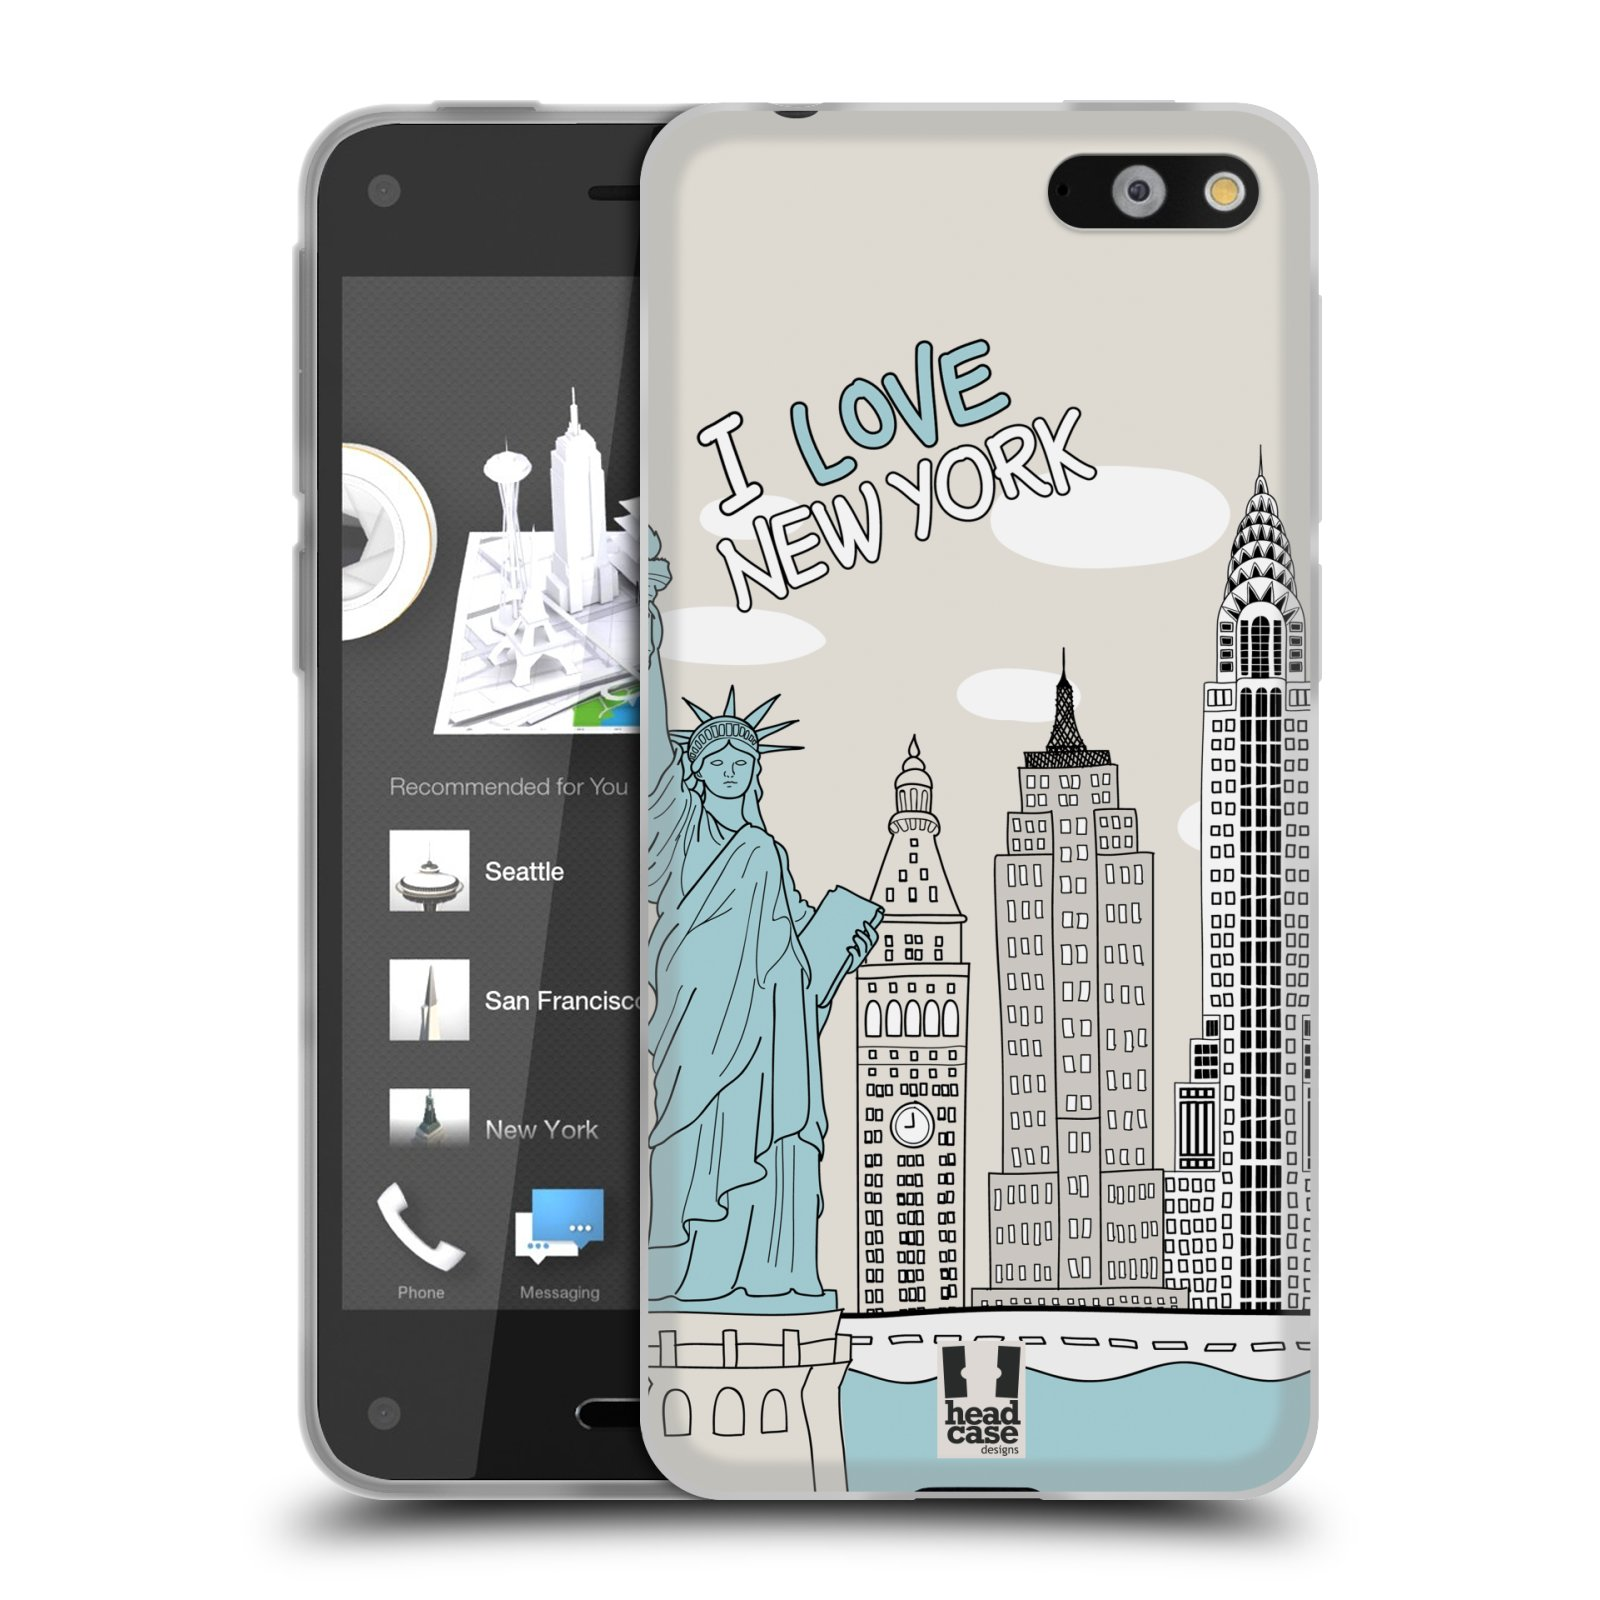 HEAD CASE silikonový obal na mobil AMAZON Fire Phone vzor Kreslená městečka MODRÁ, USA, New York, I LOVE NEW YORK